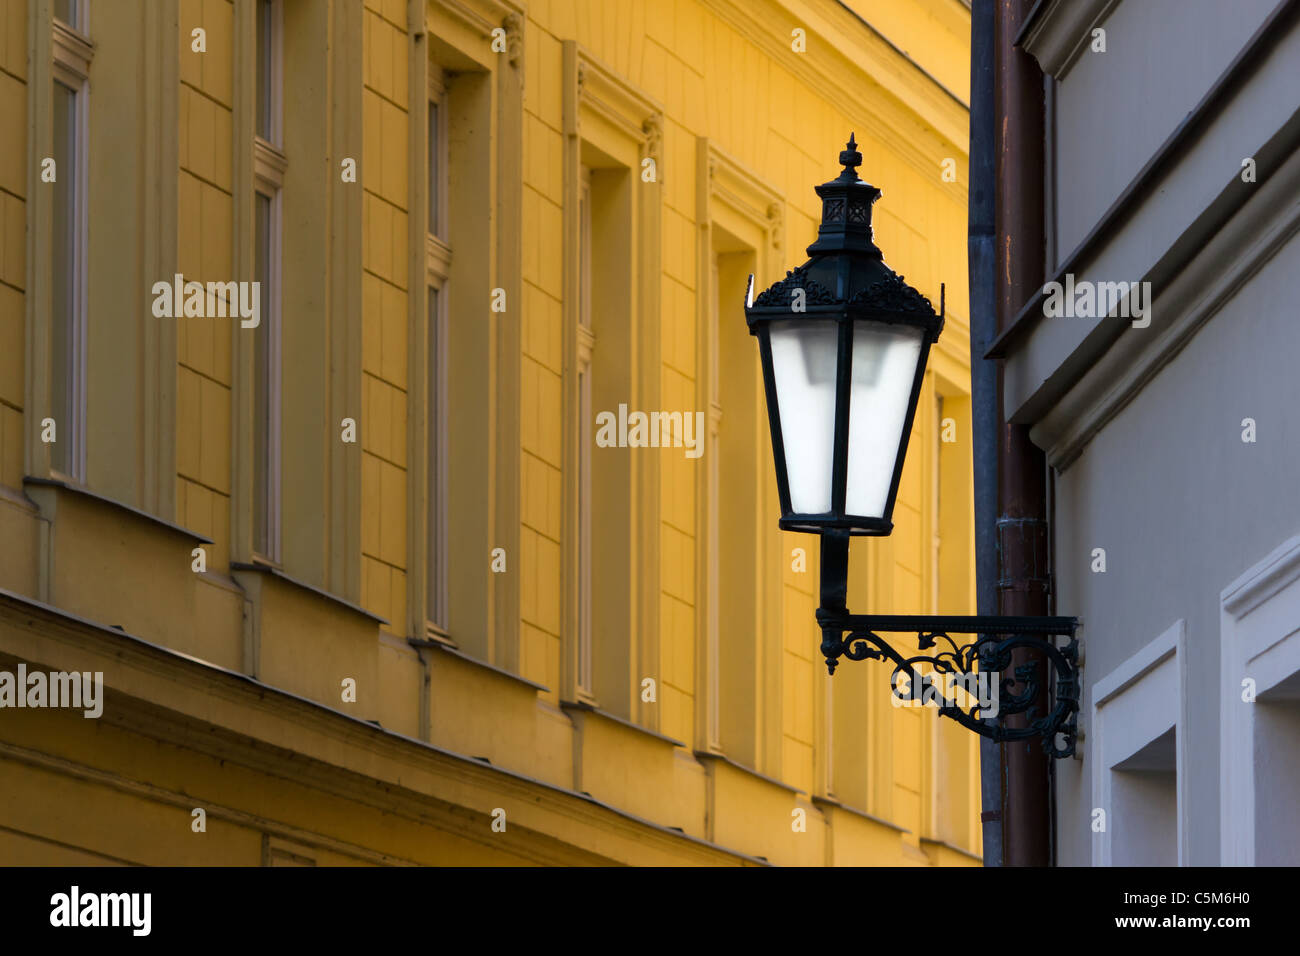 Prague street lamp - Stock Image